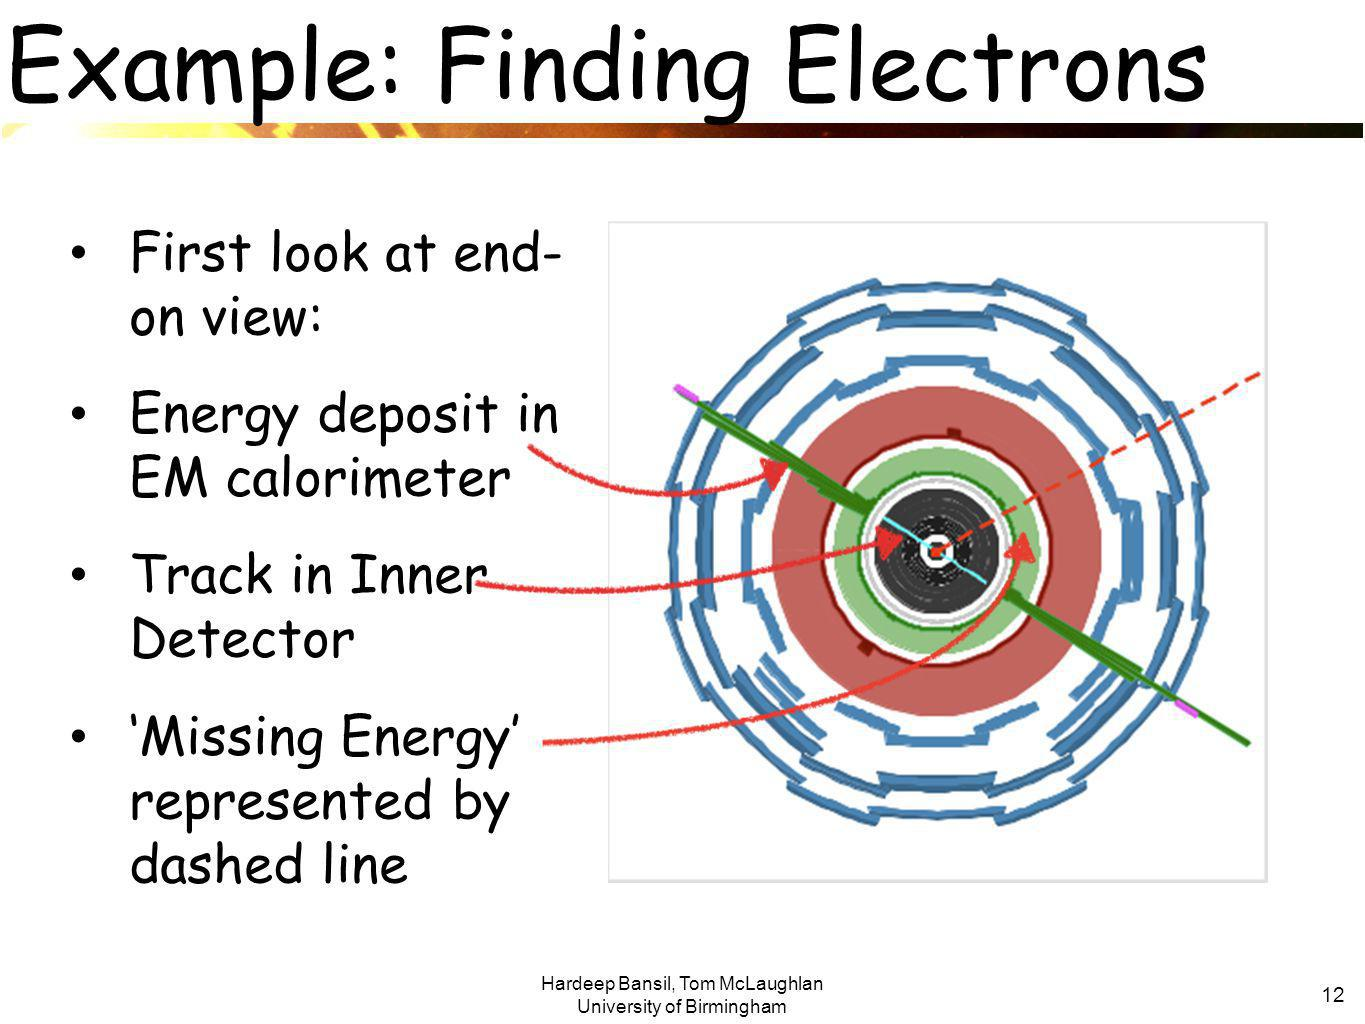 Hardeep Bansil, Tom McLaughlan University of Birmingham 12 Example: Finding Electrons First look at end- on view: Energy deposit in EM calorimeter Track in Inner Detector 'Missing Energy' represented by dashed line